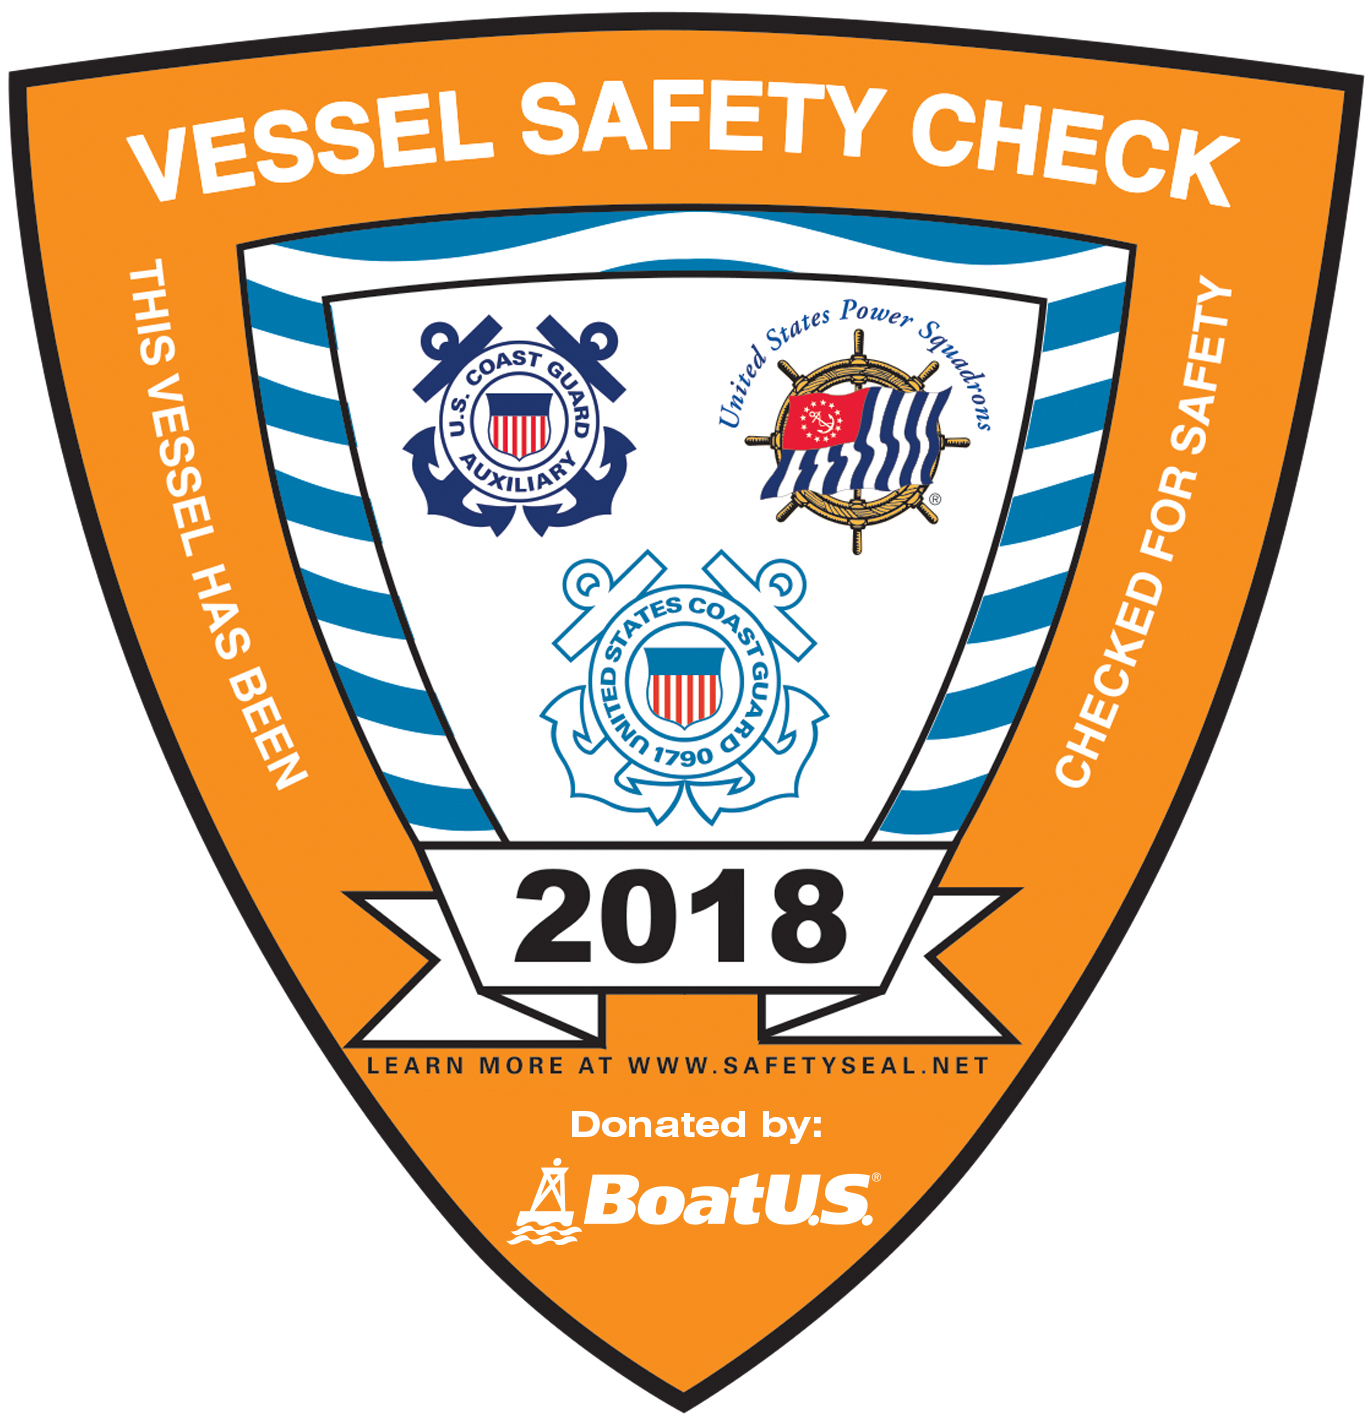 2018 Vessel Safety Check Sticker